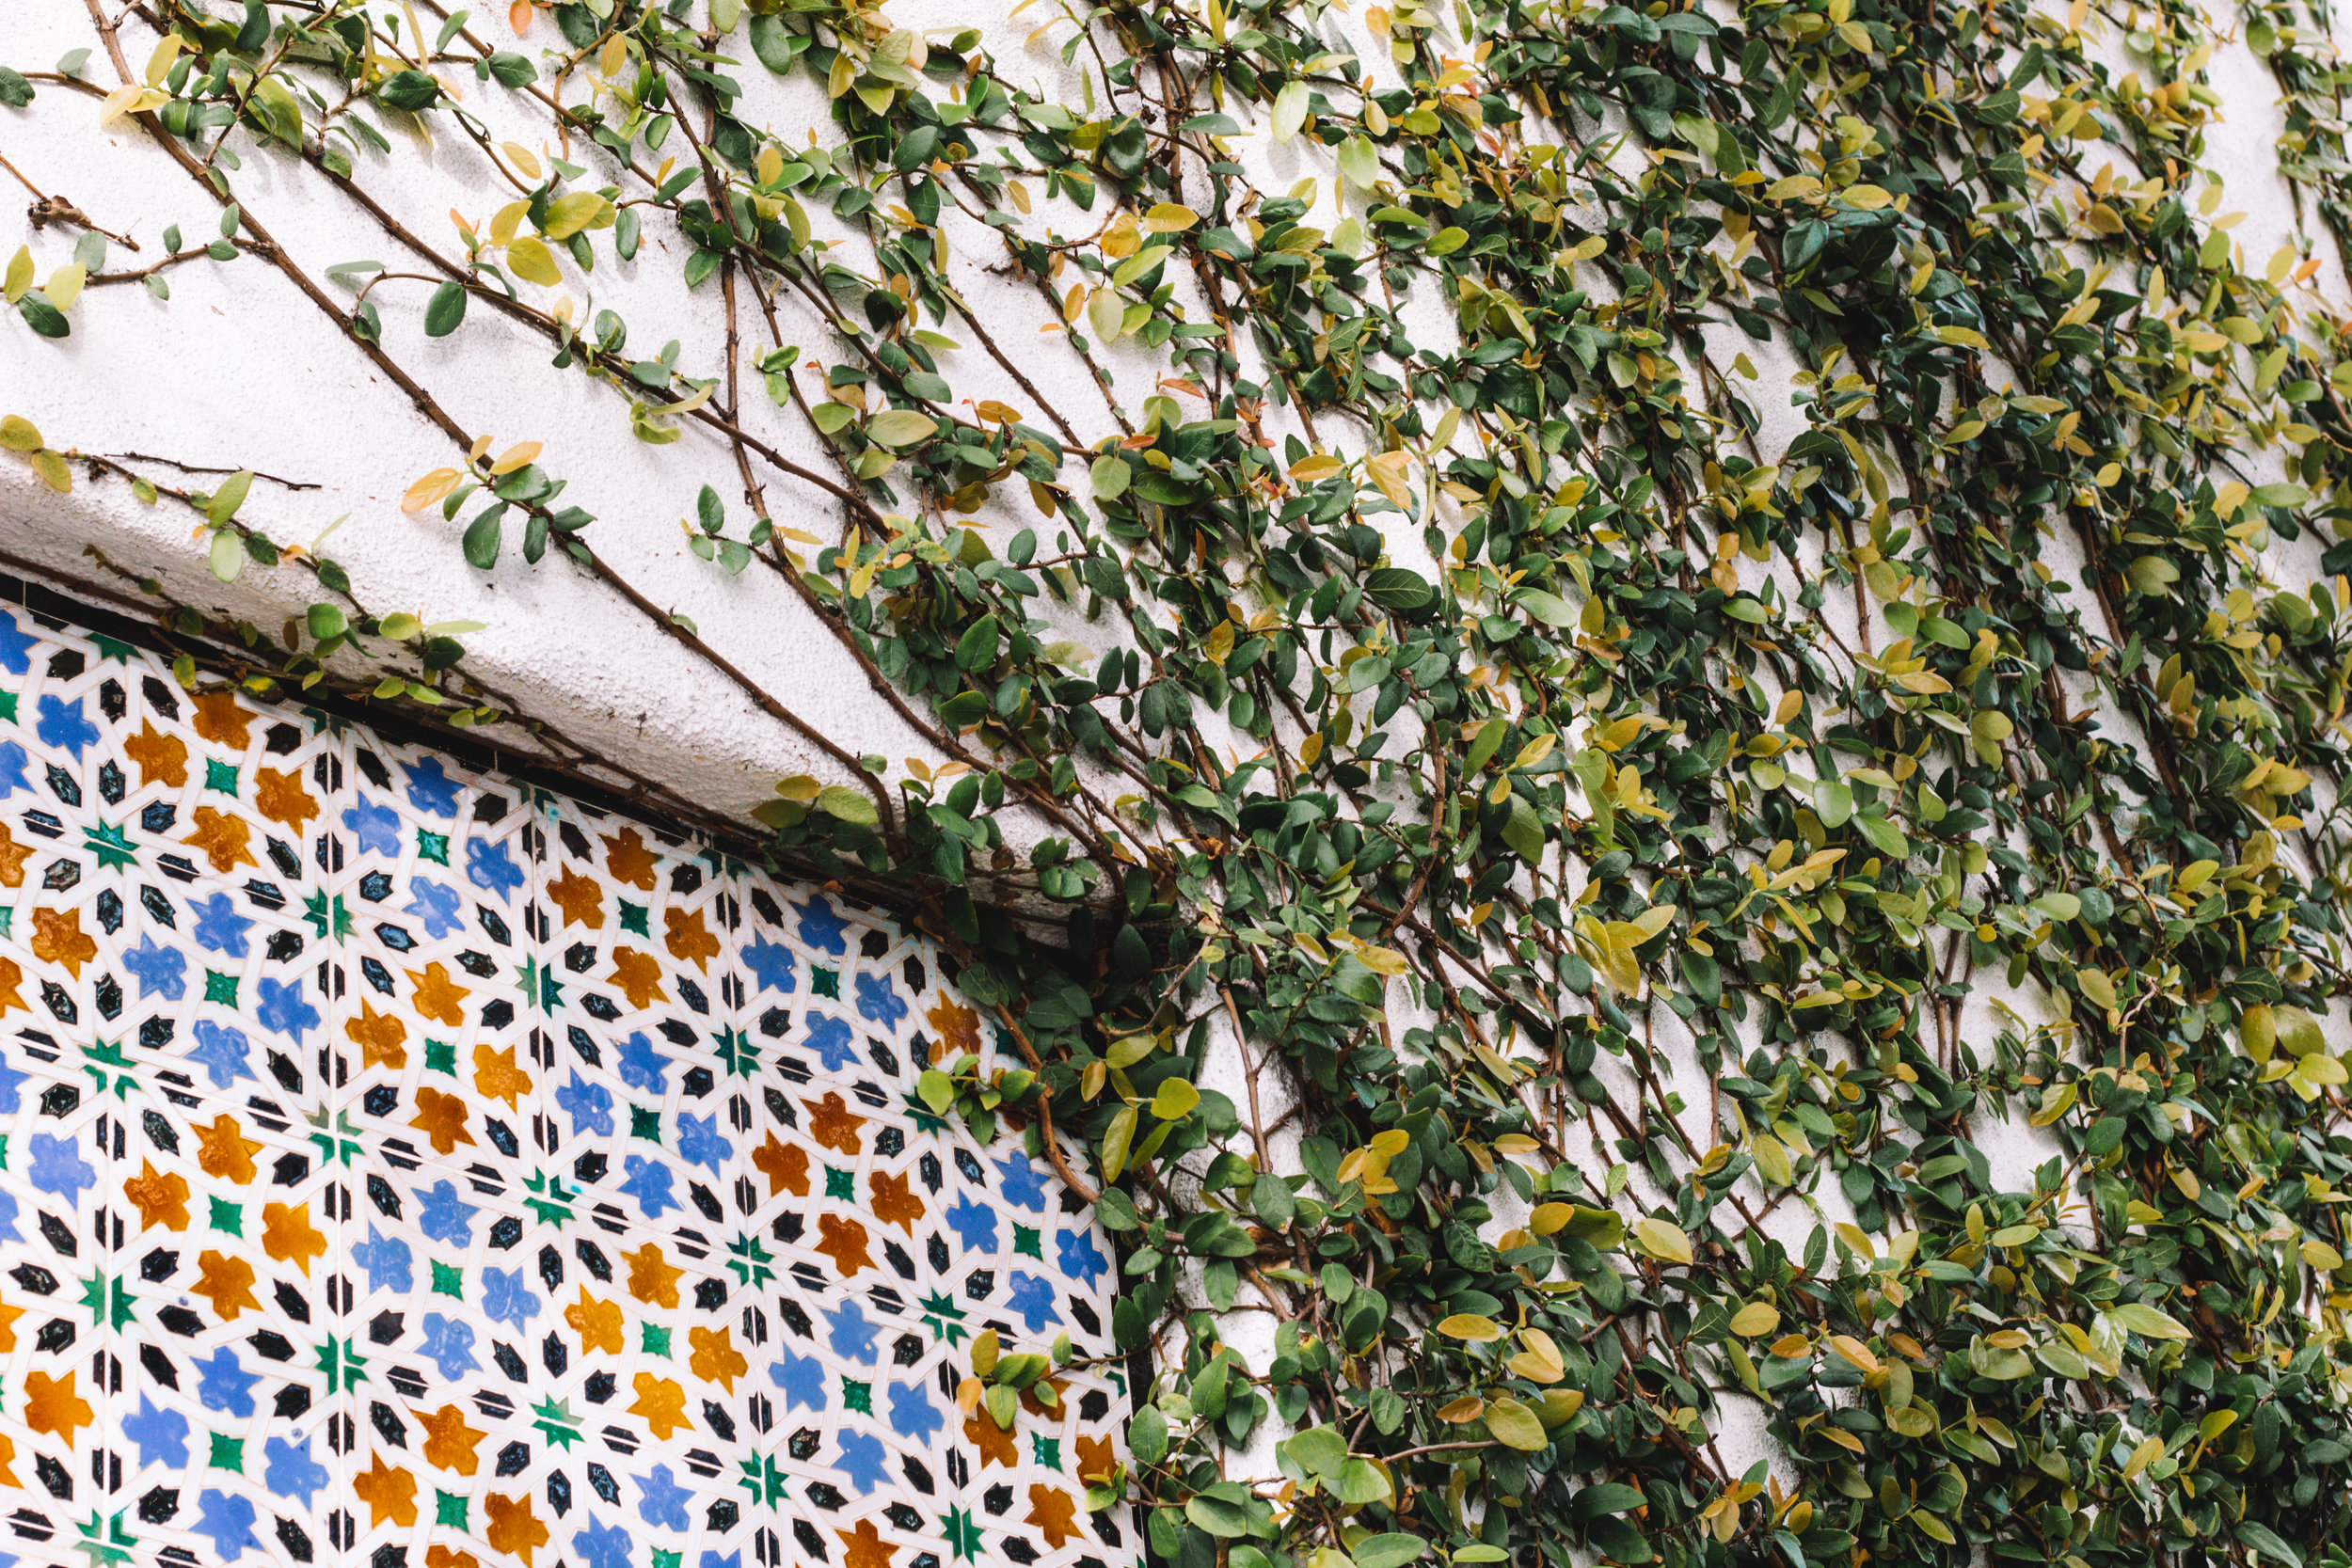 Mexican Tile and Ivy in Carmel, California | Beyond Ordinary Guides